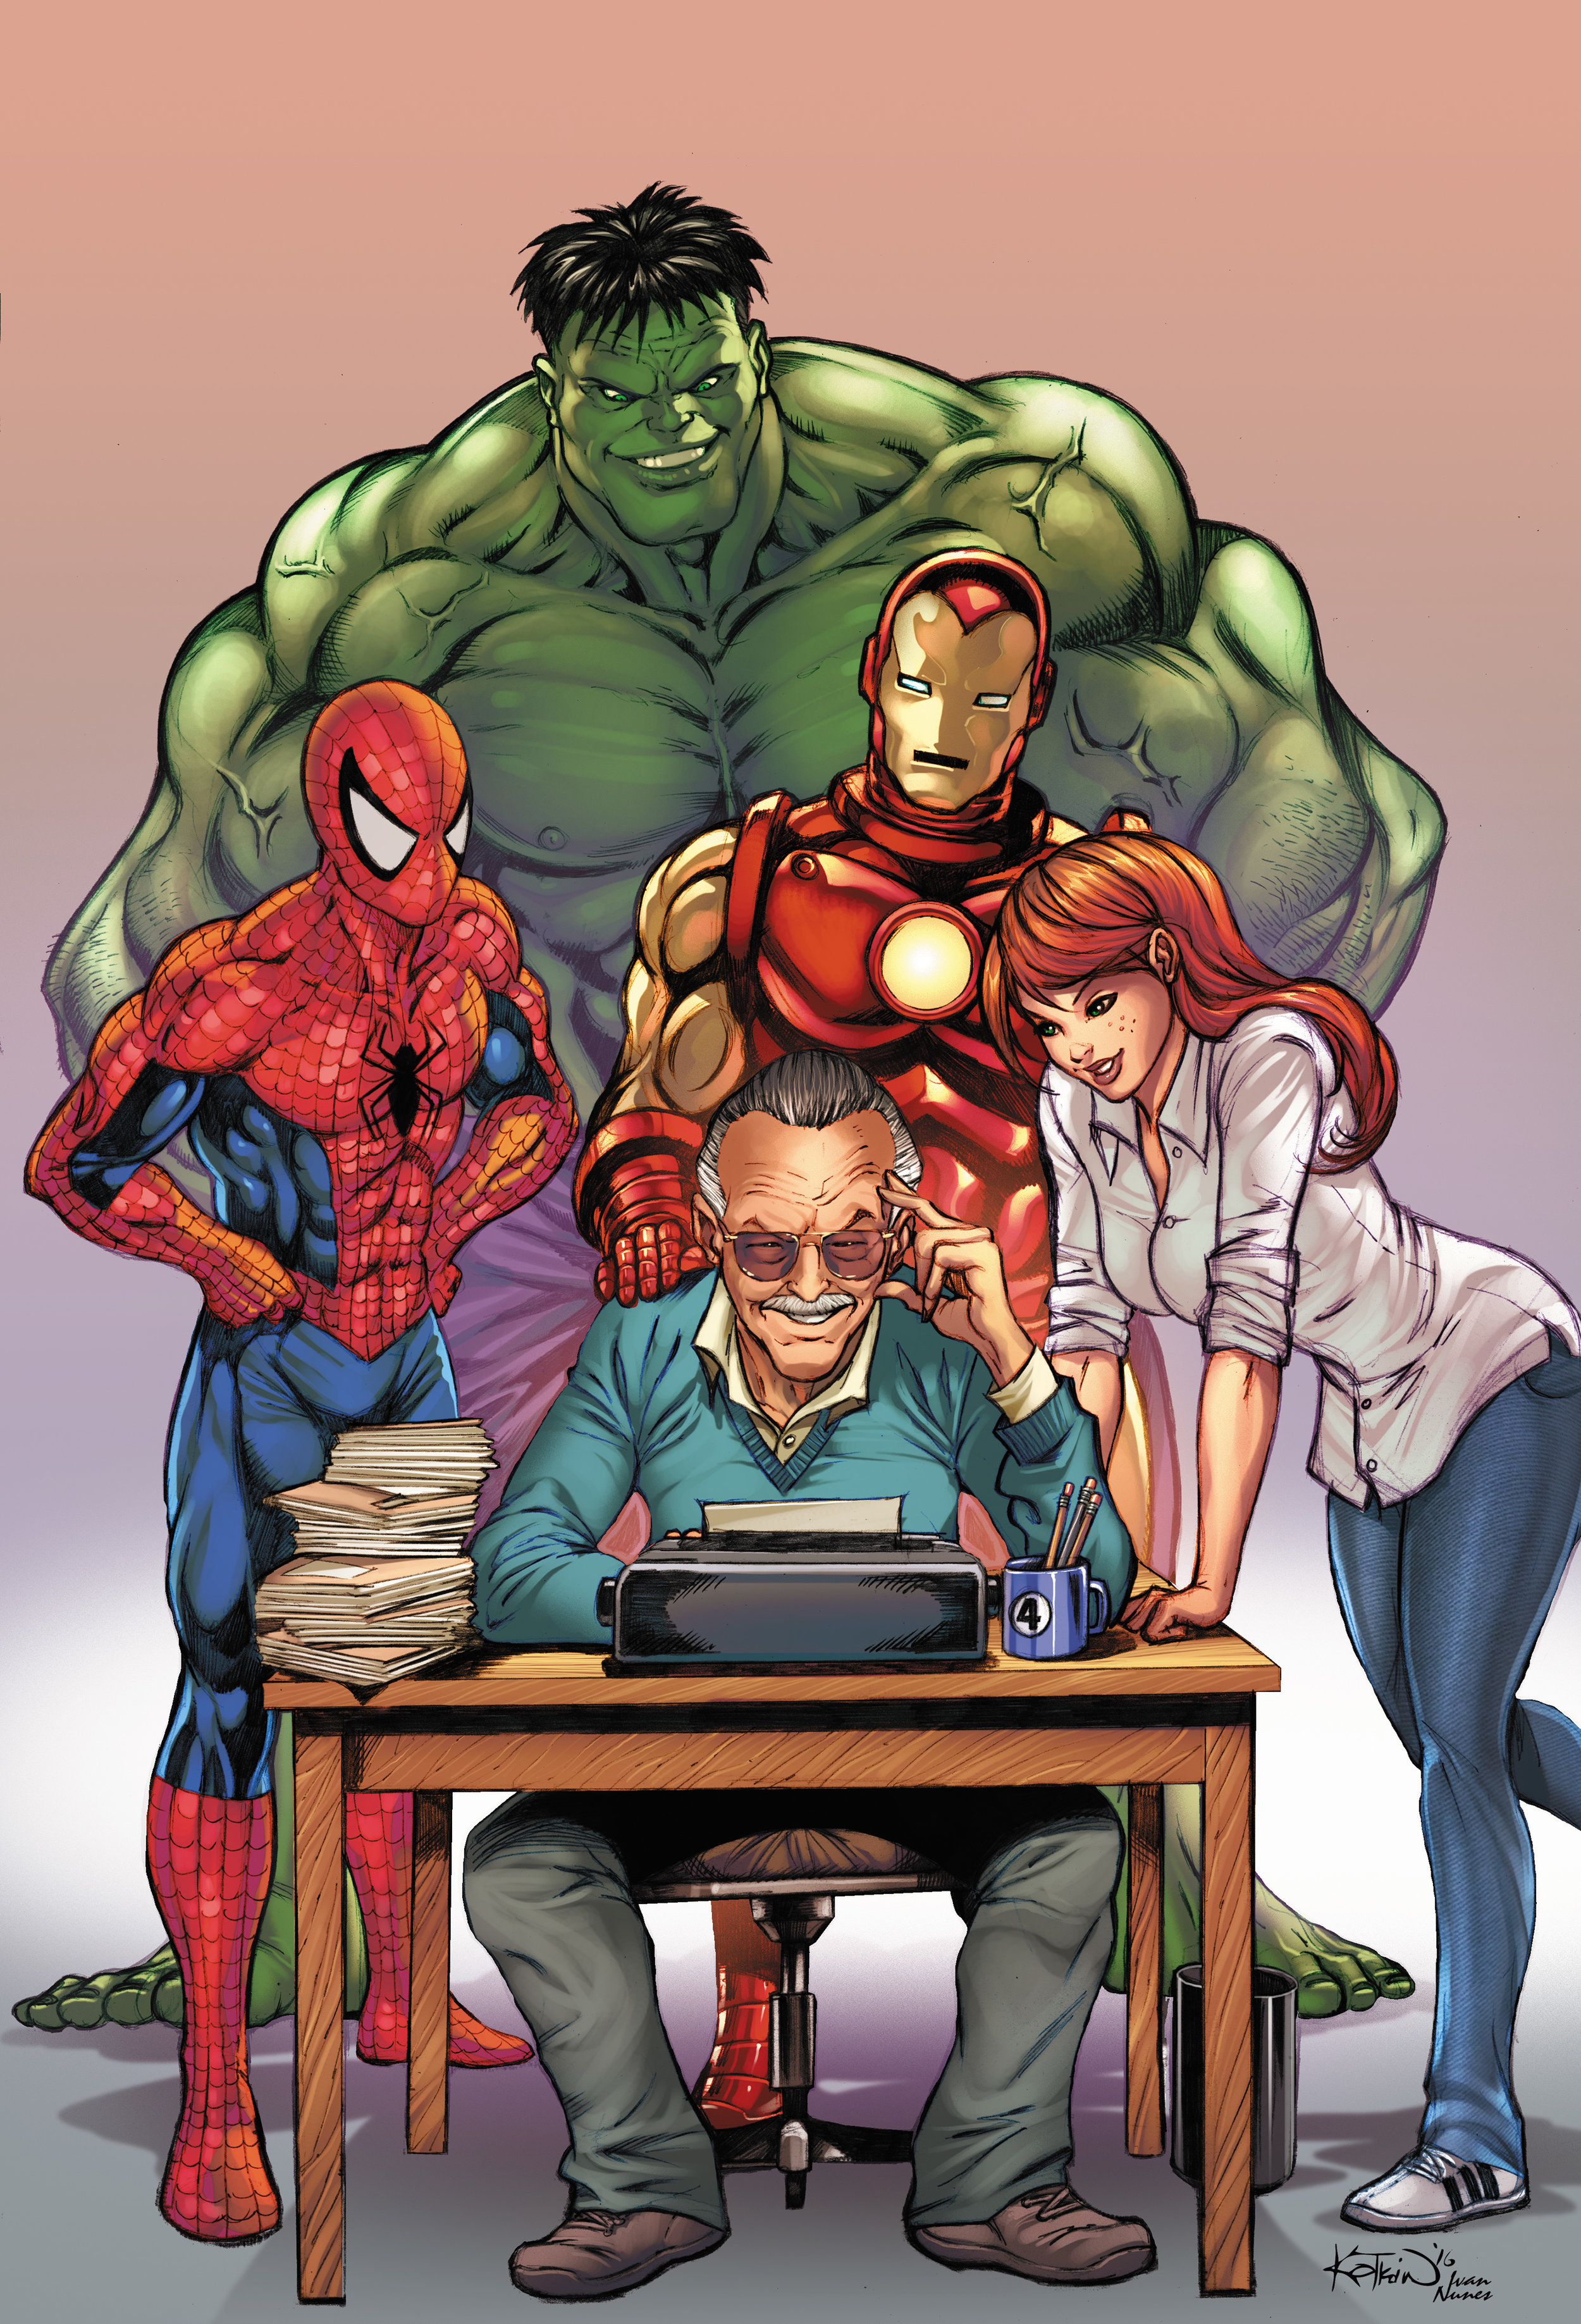 STANLEE-TABLE-1-Kotkin-IvanNunesColors.jpg